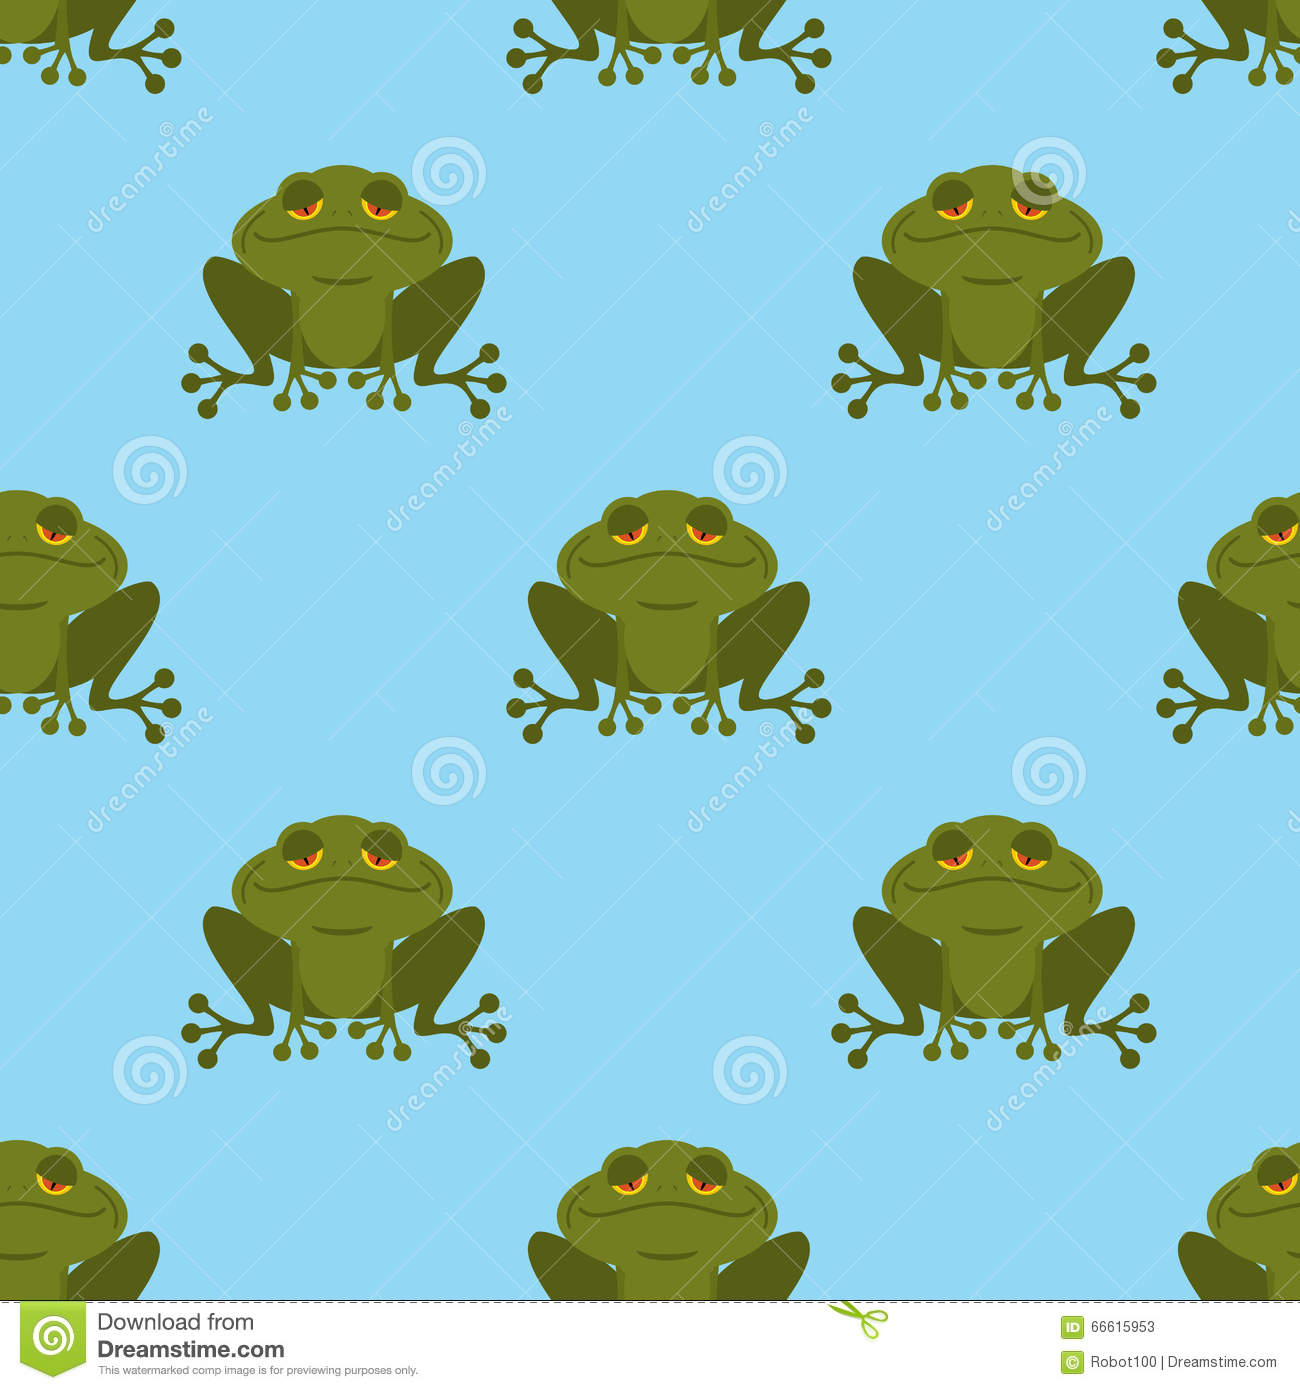 frog in water seamless pattern blue lake and green toad textur stock vector illustration. Black Bedroom Furniture Sets. Home Design Ideas